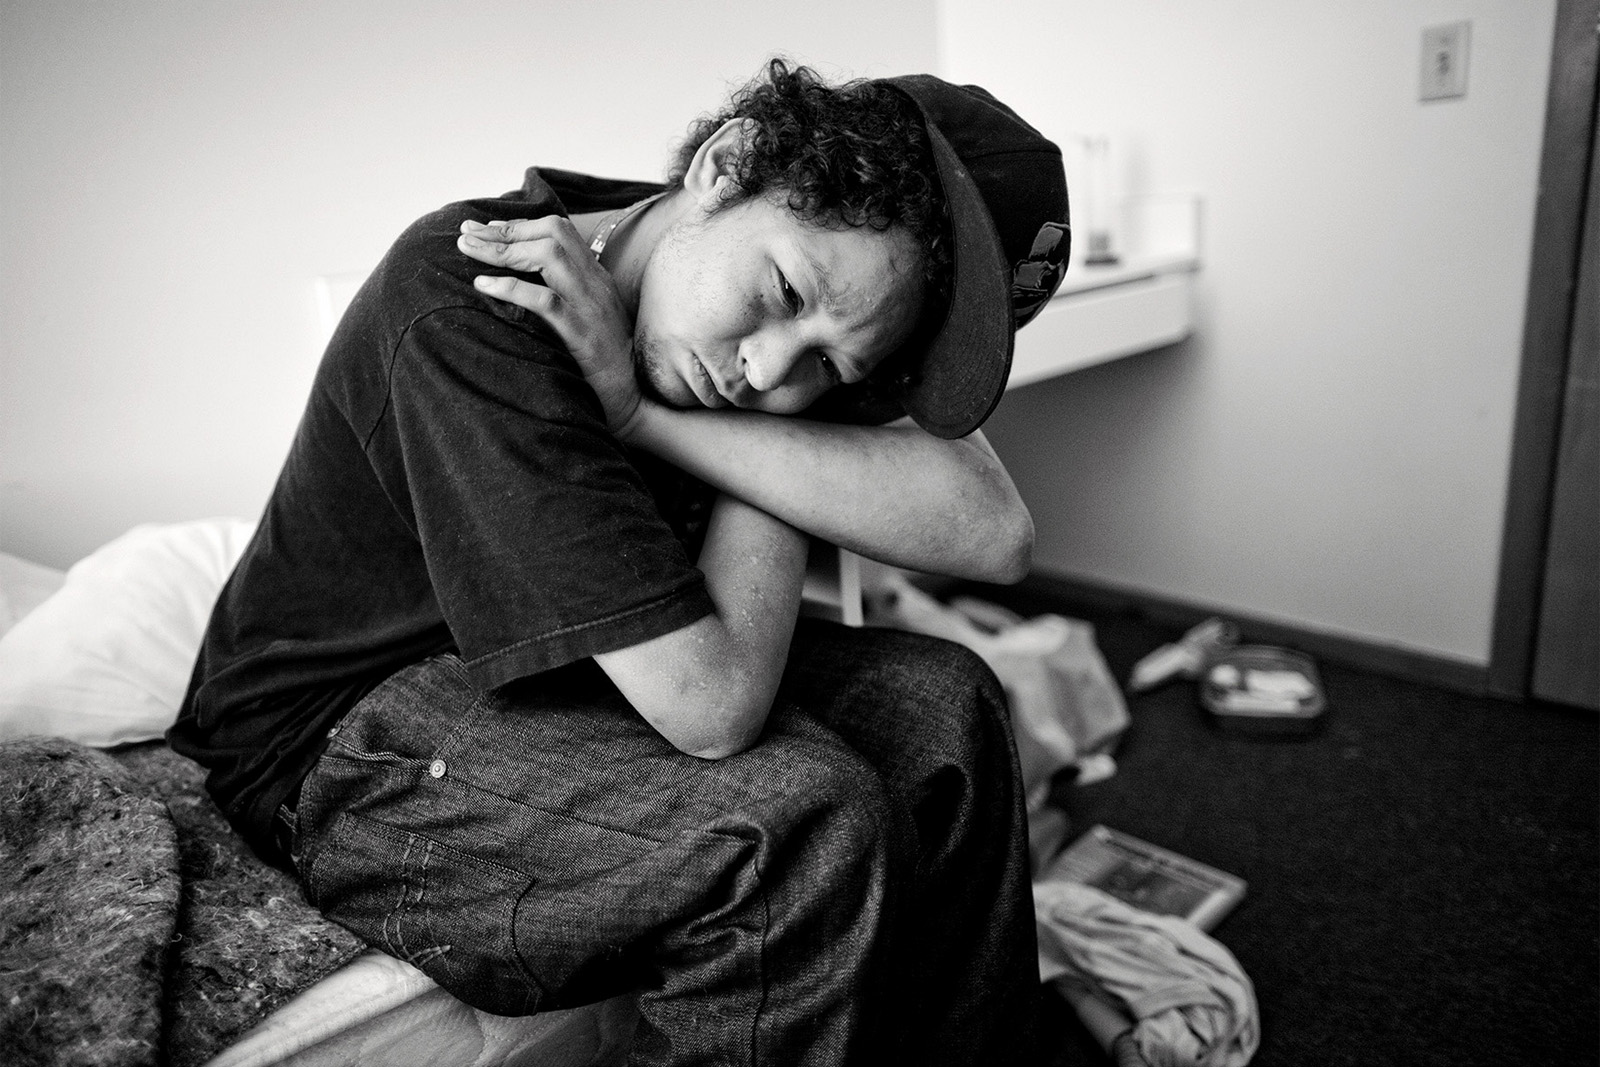 Homeless youth Seattle photojournalist Mike Kane editorial photographer